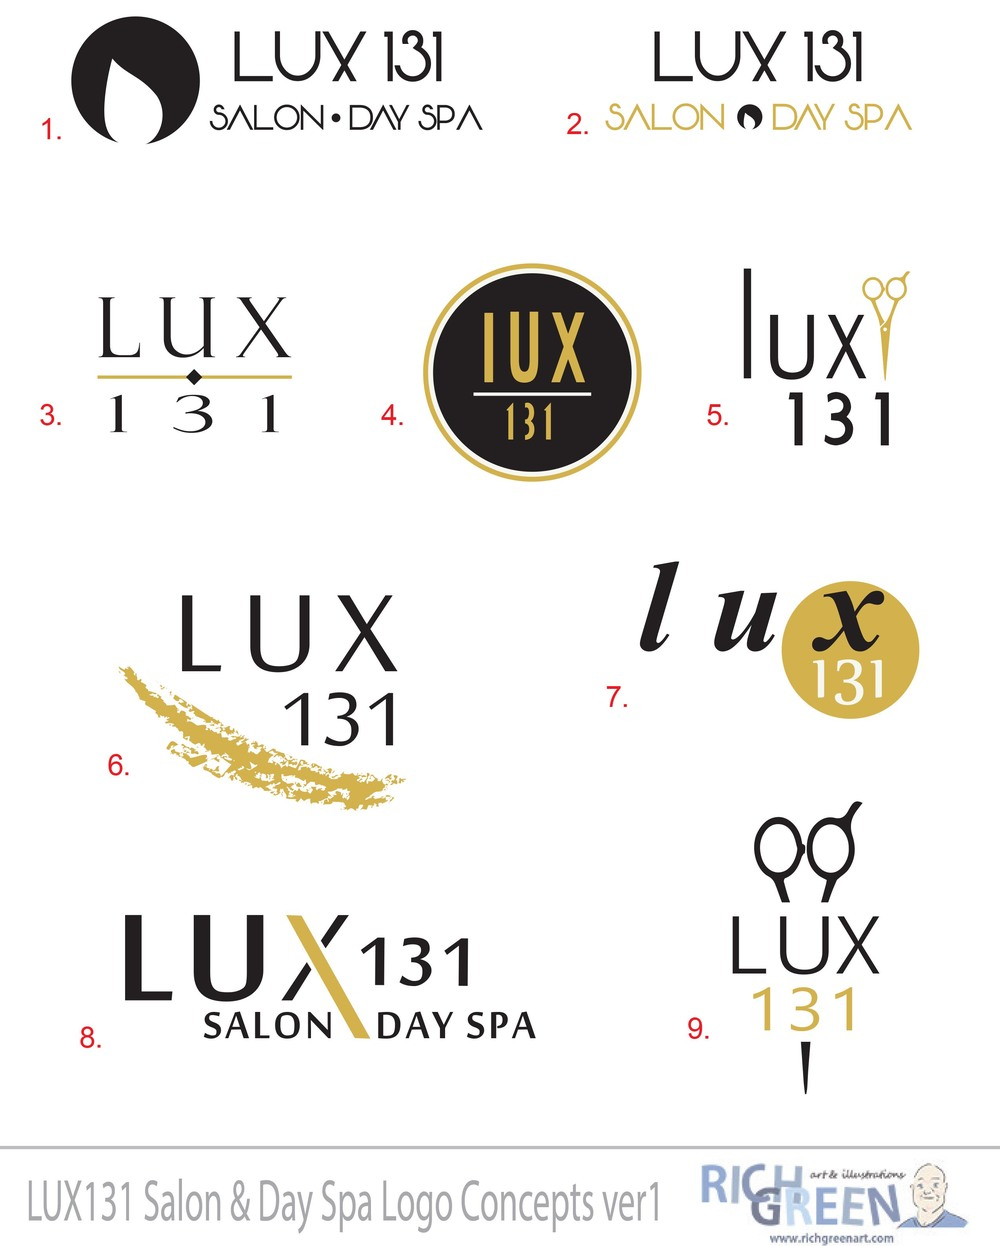 Lux 131 Logo Concepts sheet 1